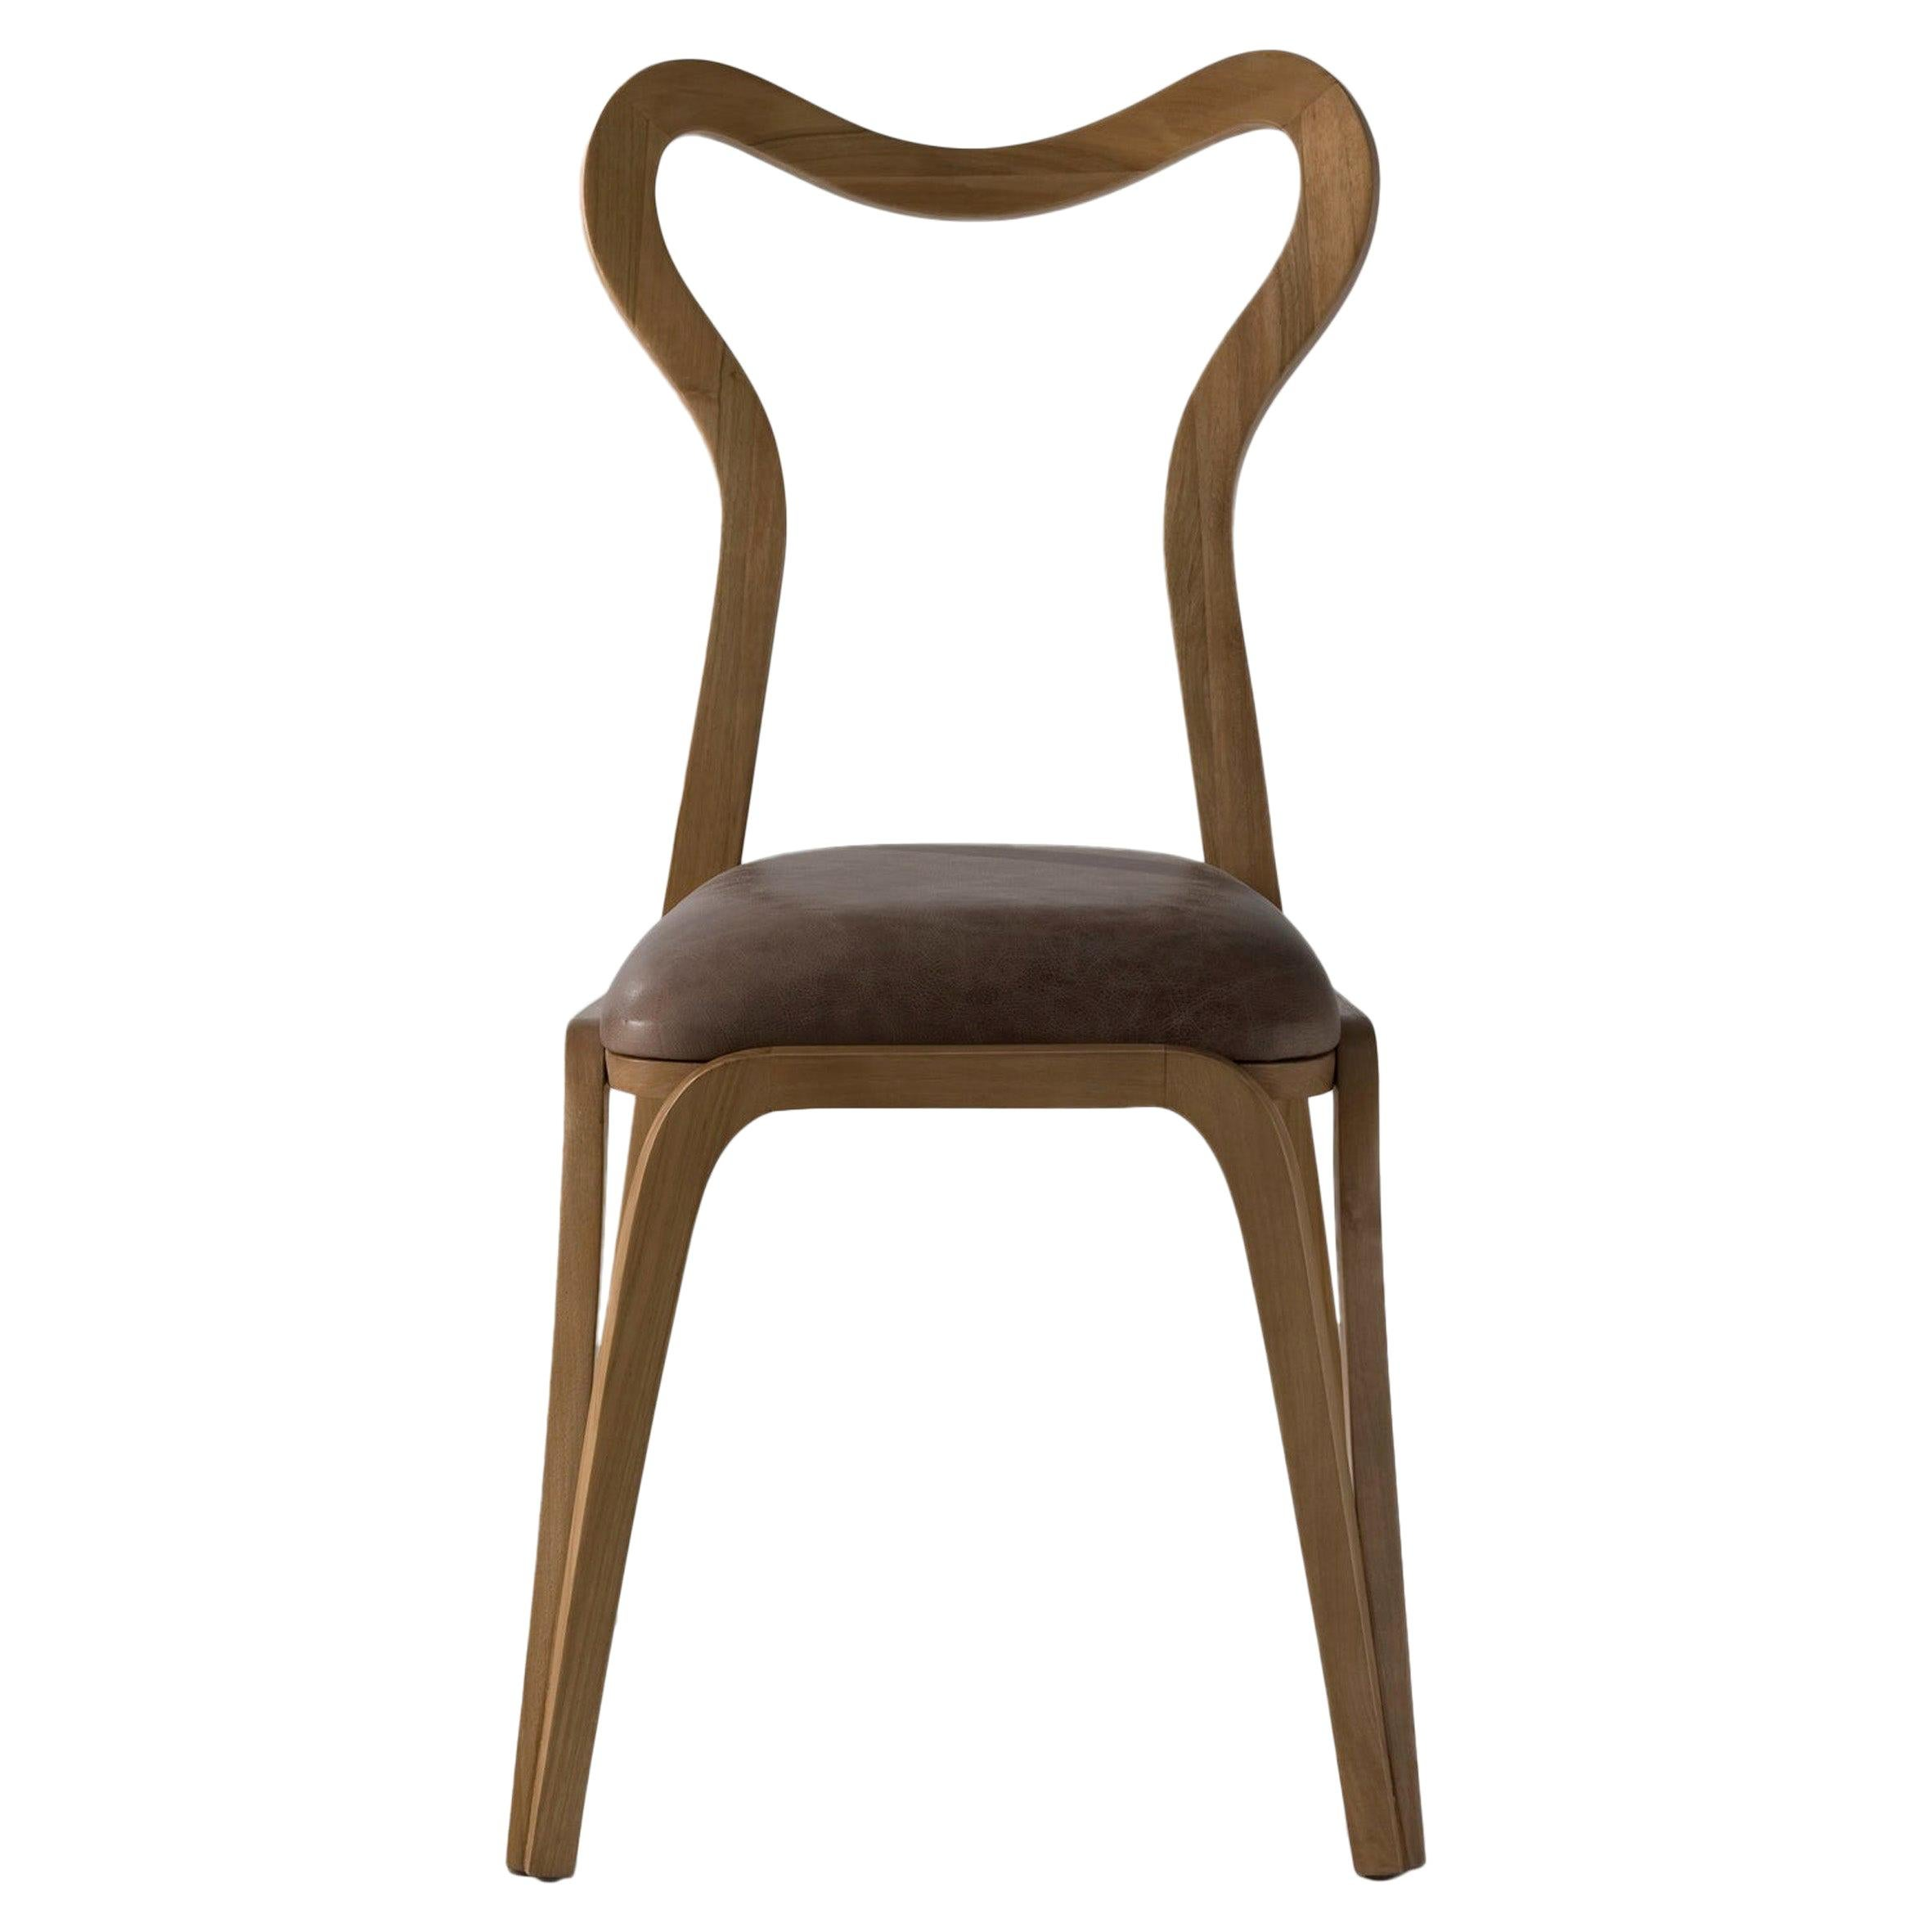 Dining Chair in Walnut Wood and with Upholstered Seat in Leather